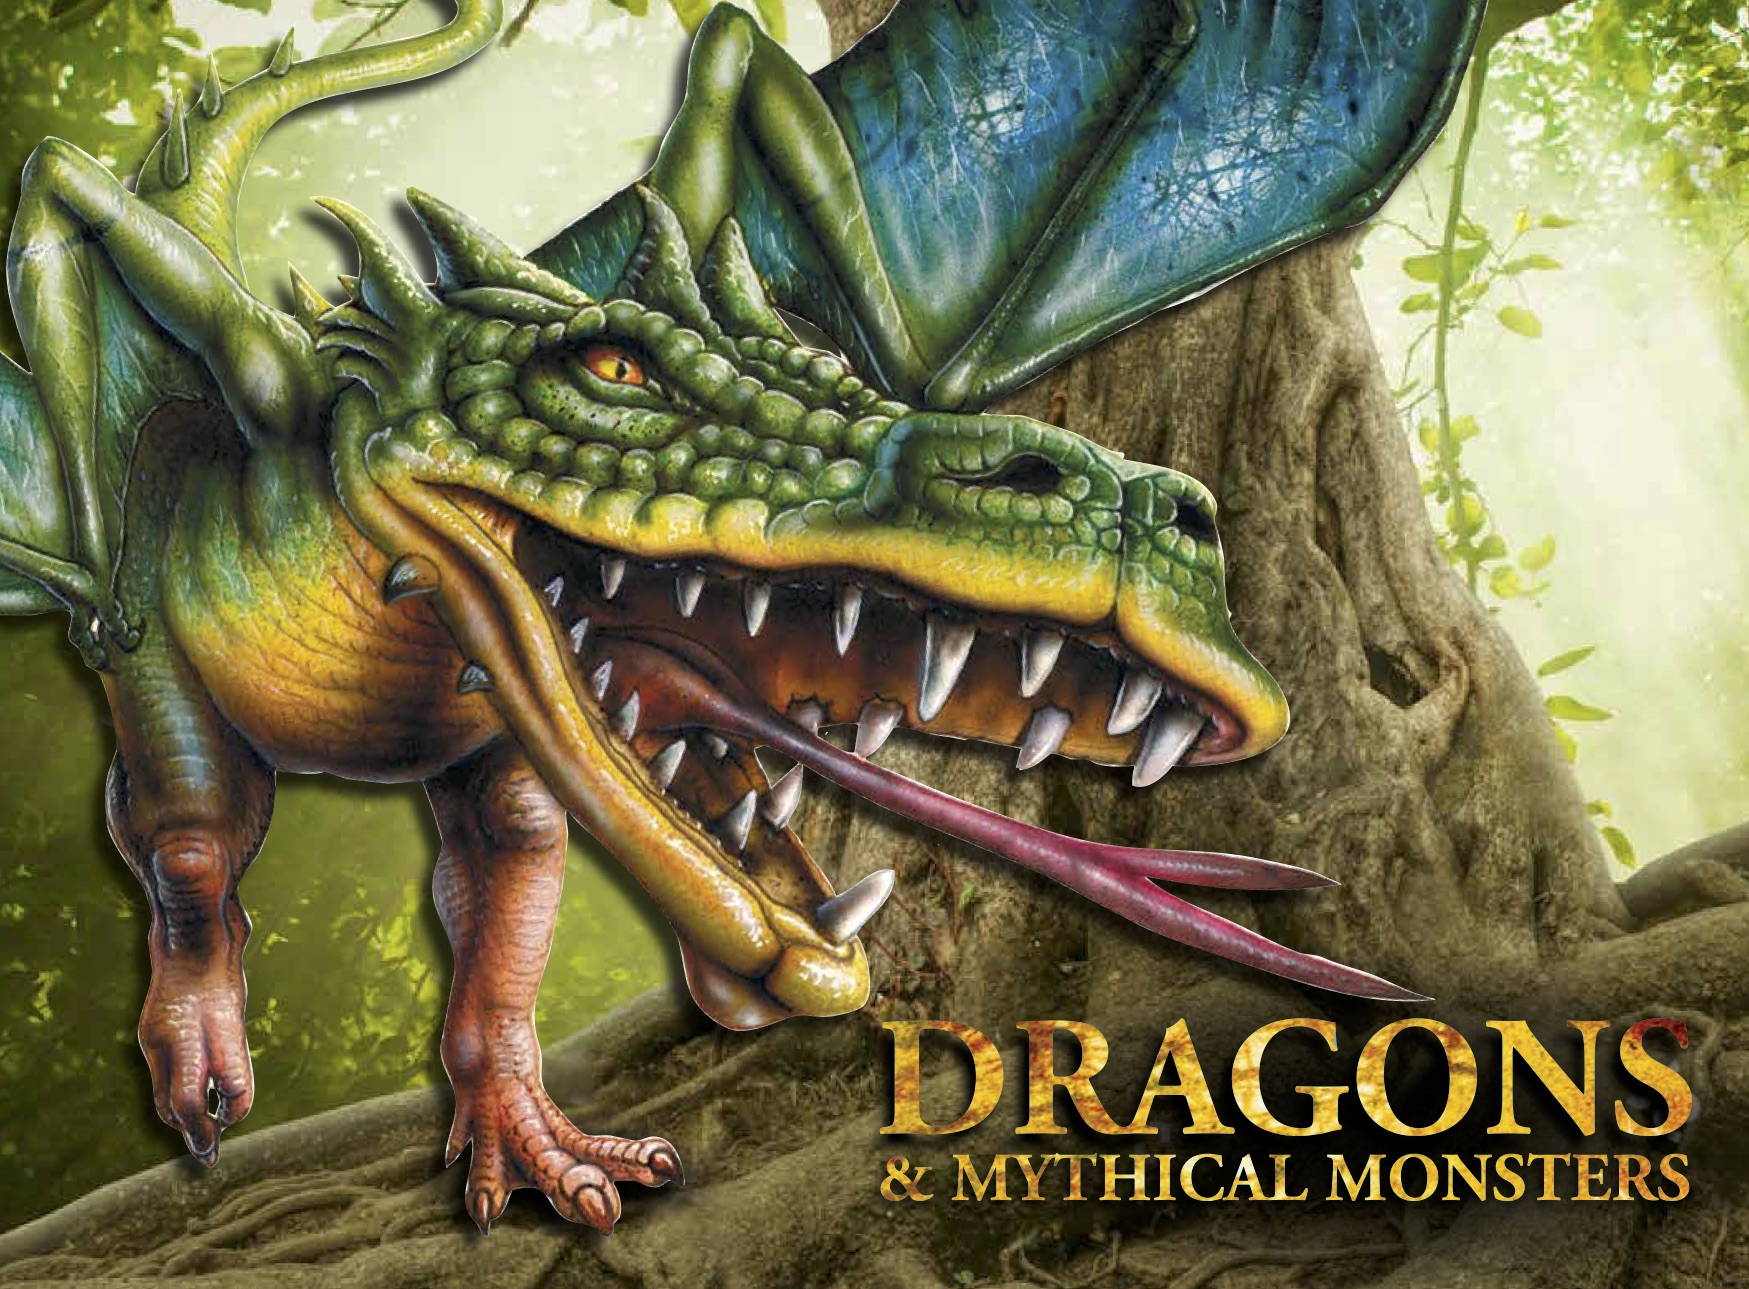 Dragons & Mythical Monsters